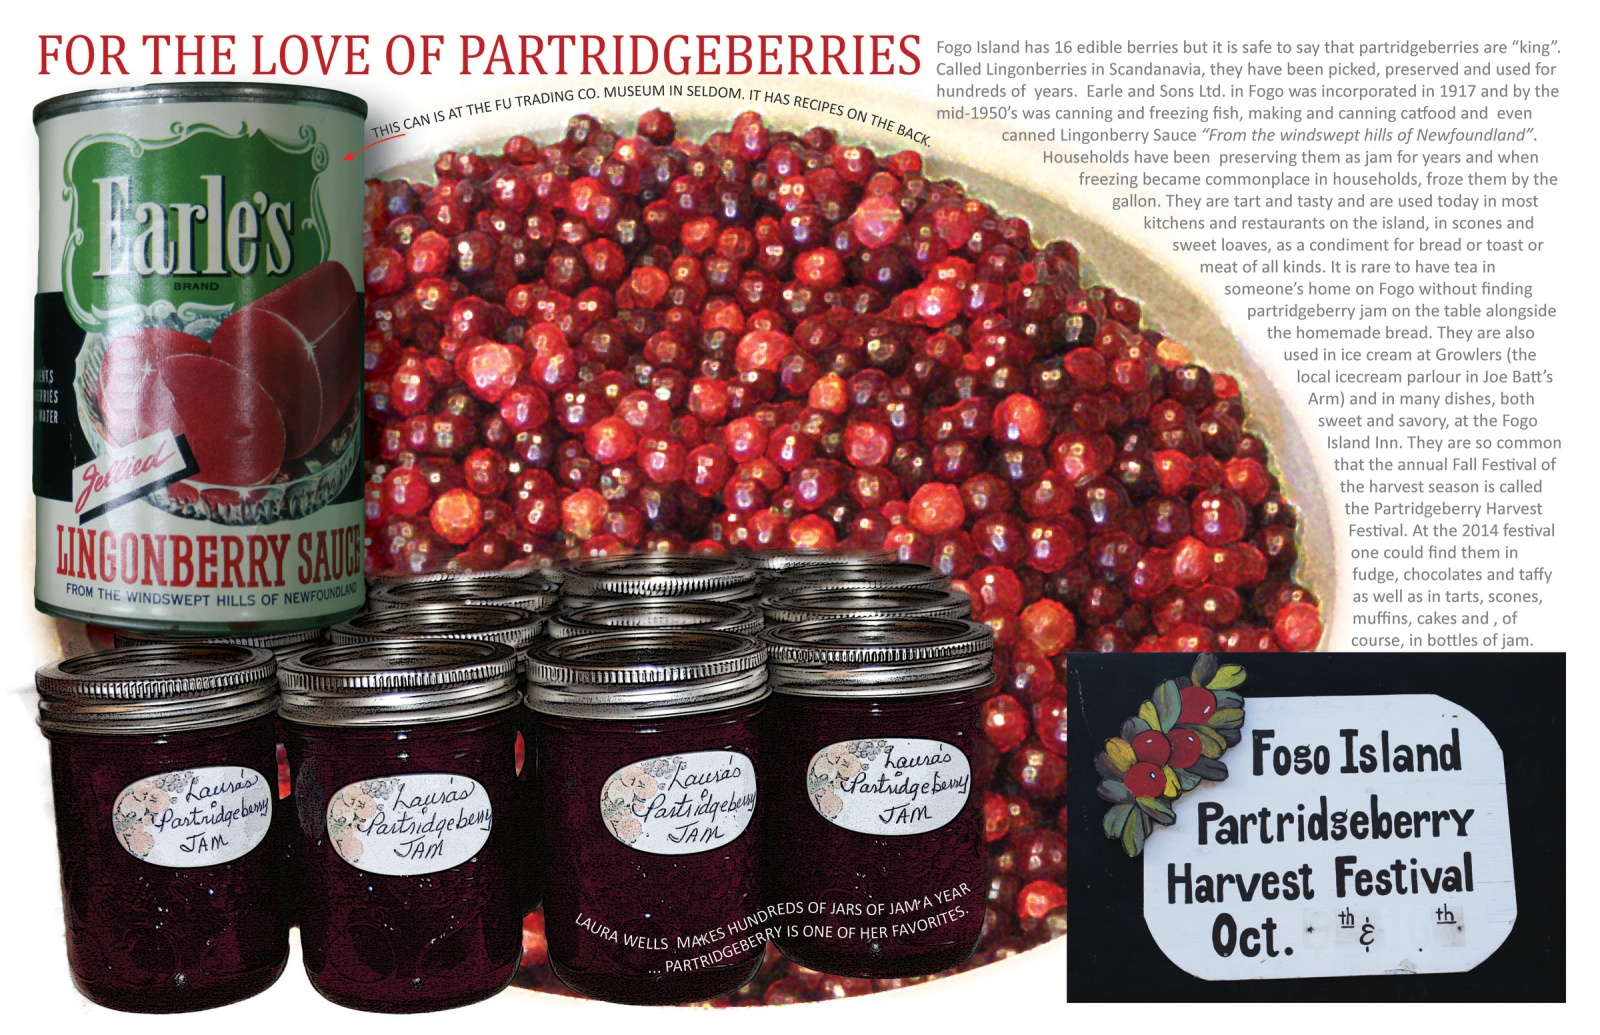 For the Love of Partridgeberries